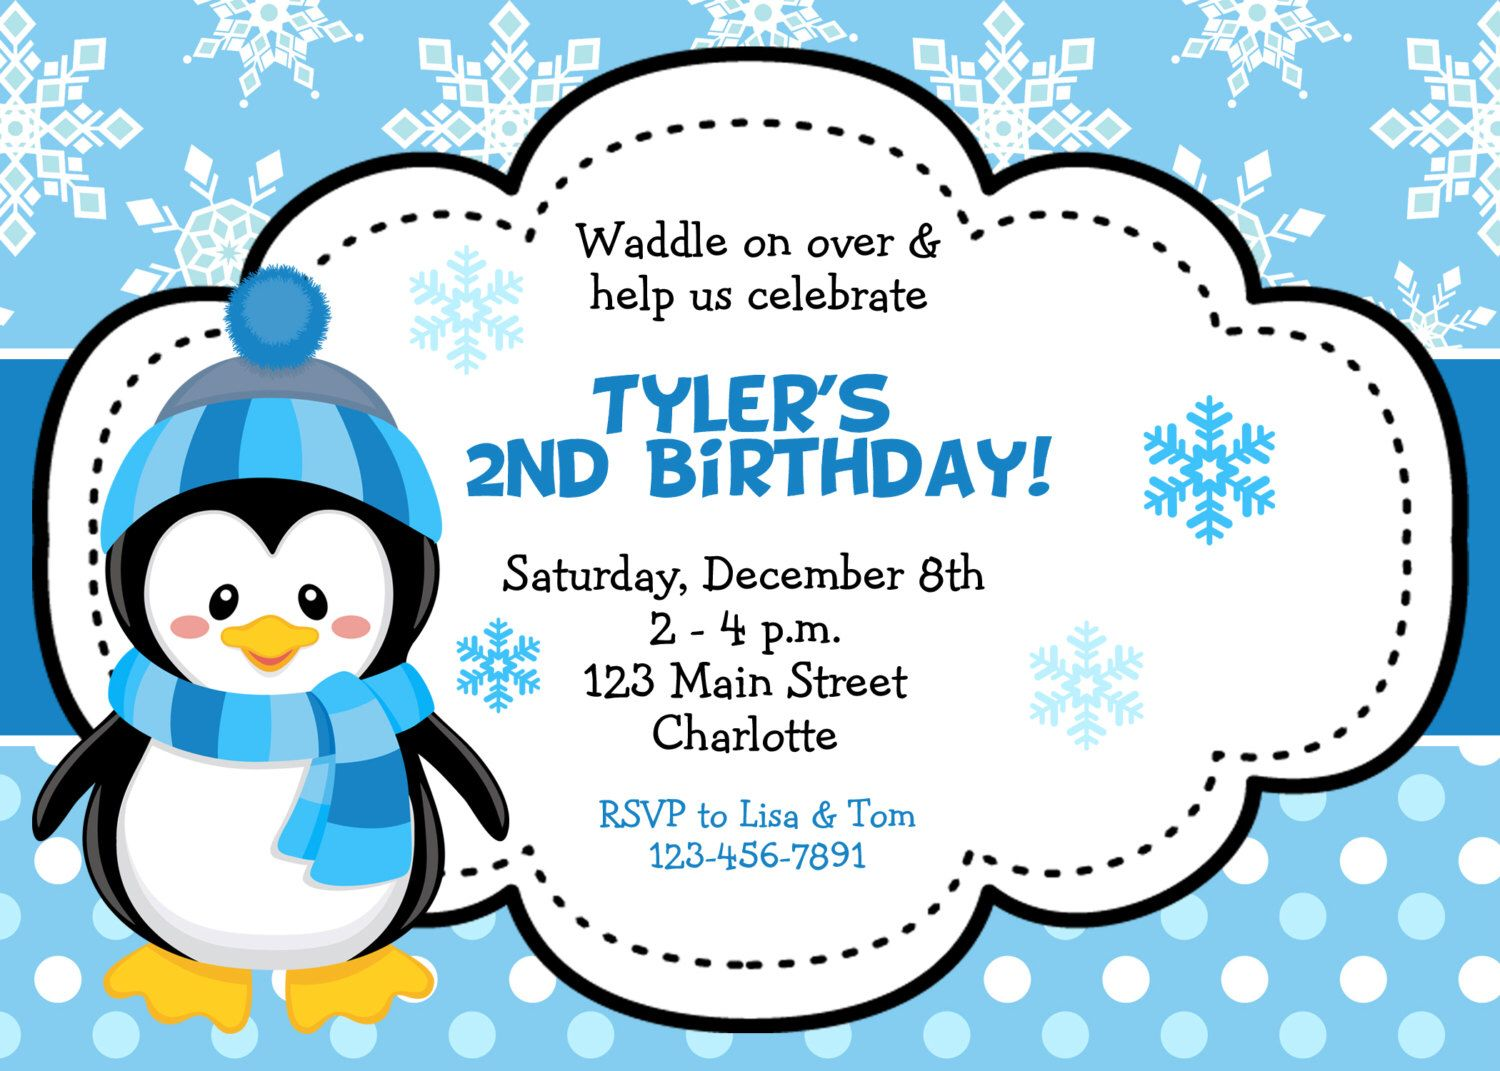 Penguin birthday party invitation winter birthday invitation penguin birthday party invitation winter birthday invitation blue penguin you print or i print by thebutterflypress on etsy filmwisefo